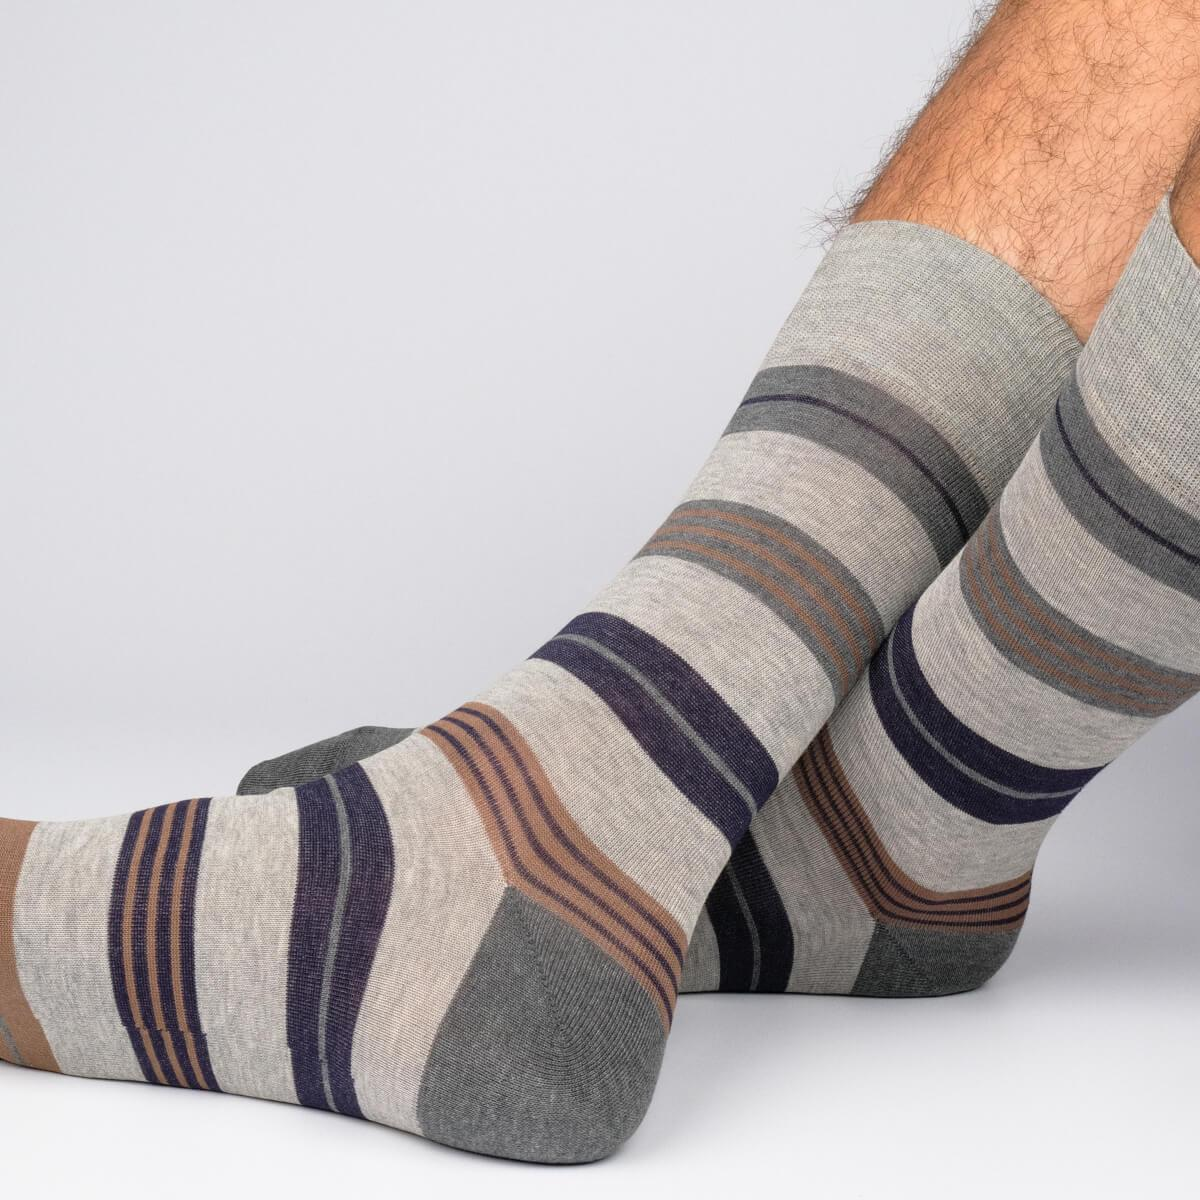 Amsterdam Stripes - Grey - Mens Socks | Etiquette Clothiers Global Official